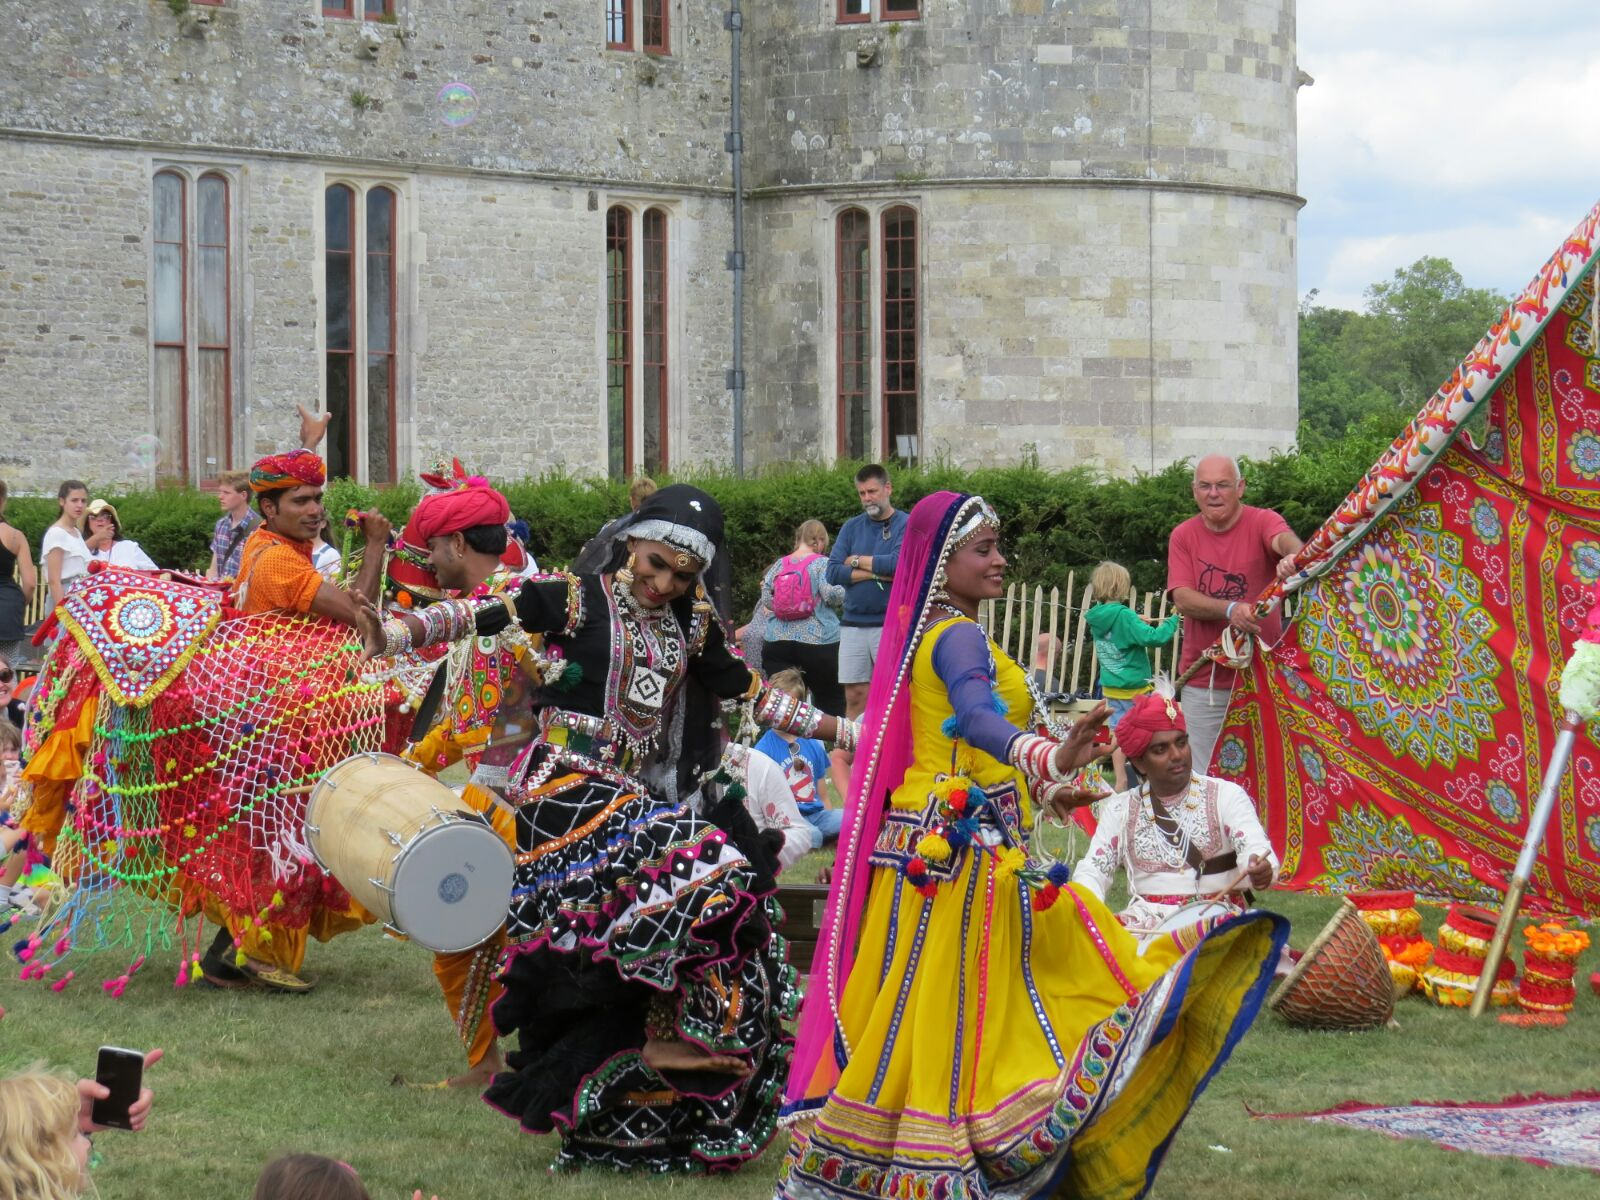 GERONIMO! Rajasthani circus superstars at the UK's largest children's festival